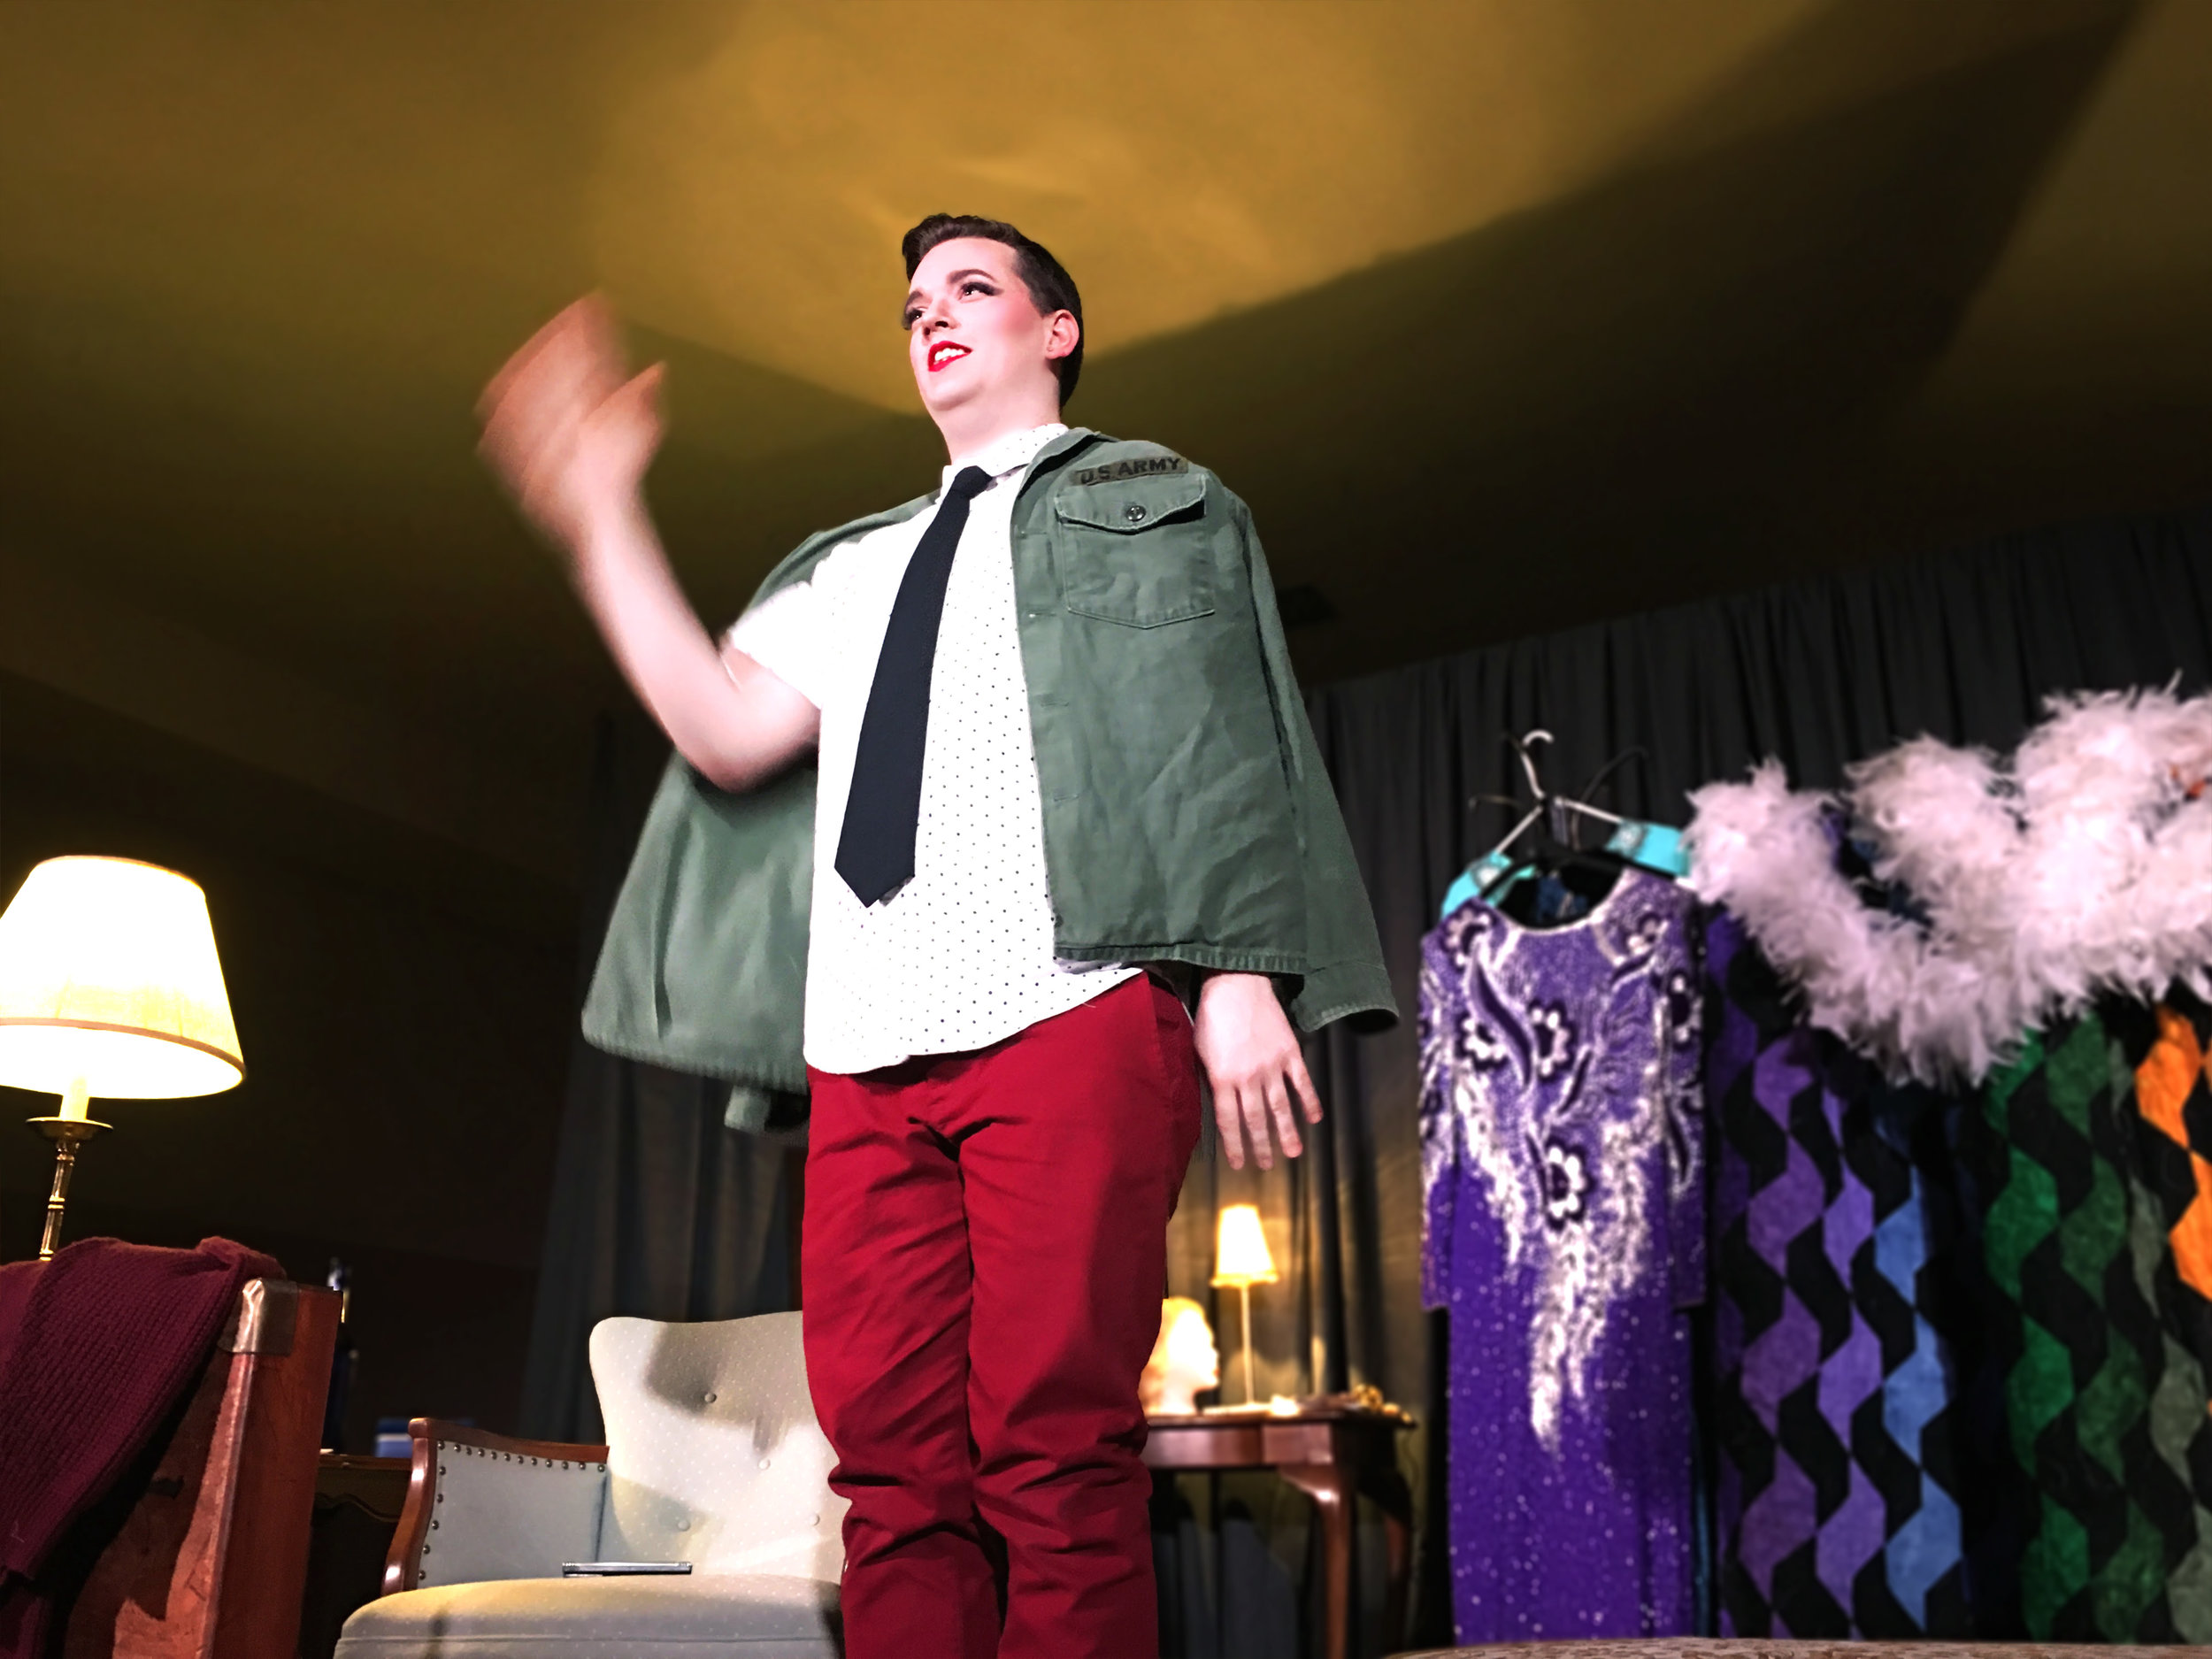 Andrew Harth as Bill Carlson / Miss Seaway Rose in  Blunderland  by Rufus Cadigan (photo by Mike Werckle)